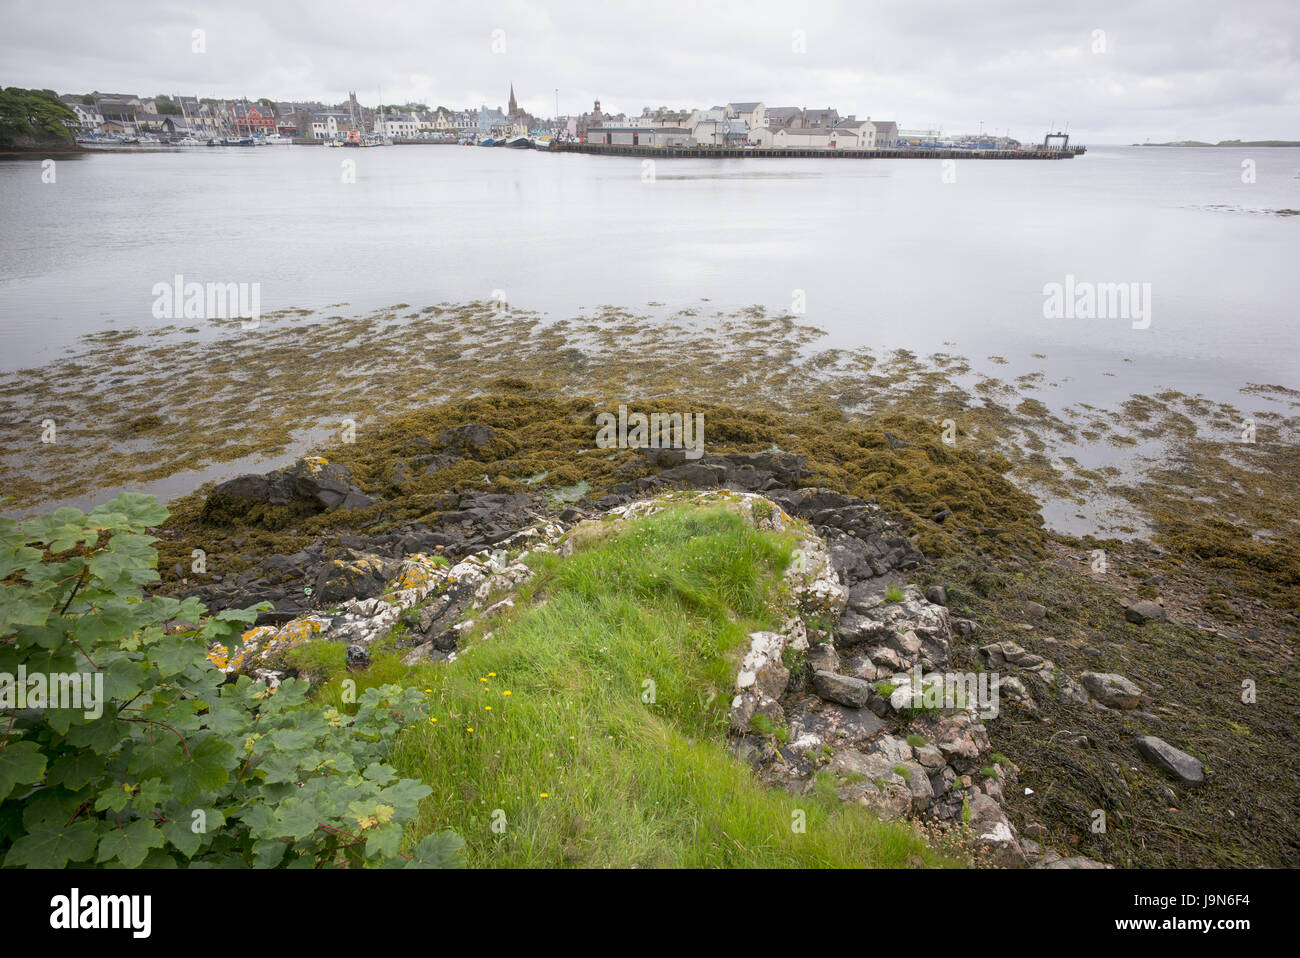 Shoreline with seaweed and rock opposite Stornoway harbour, Outer Hebrides, Scotland, UK - Stock Image